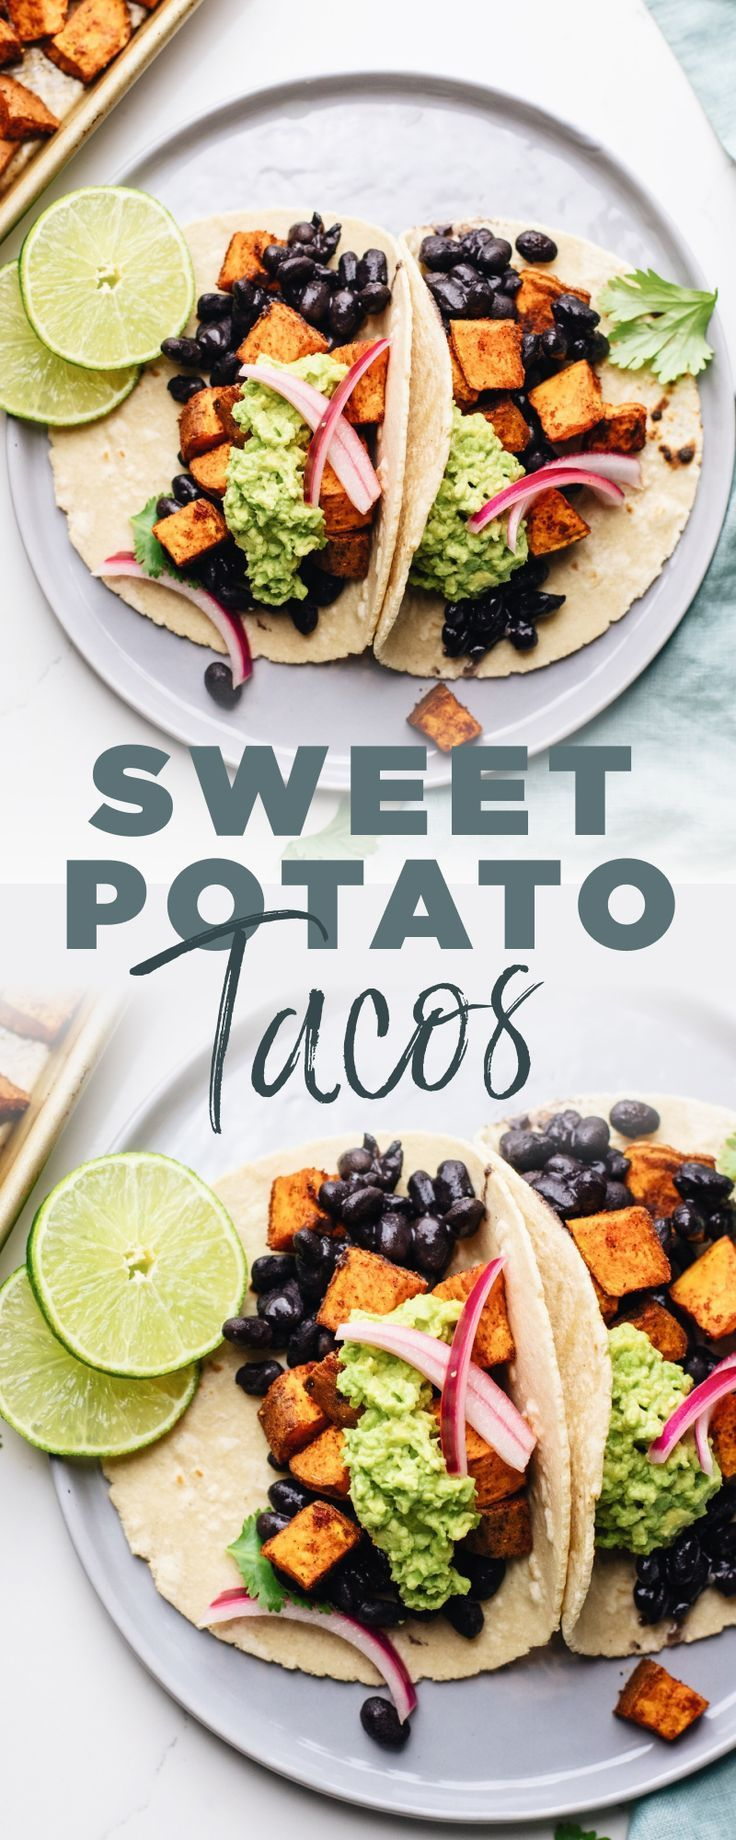 Easy Black Bean Sweet Potato Tacos – A Simple Palate